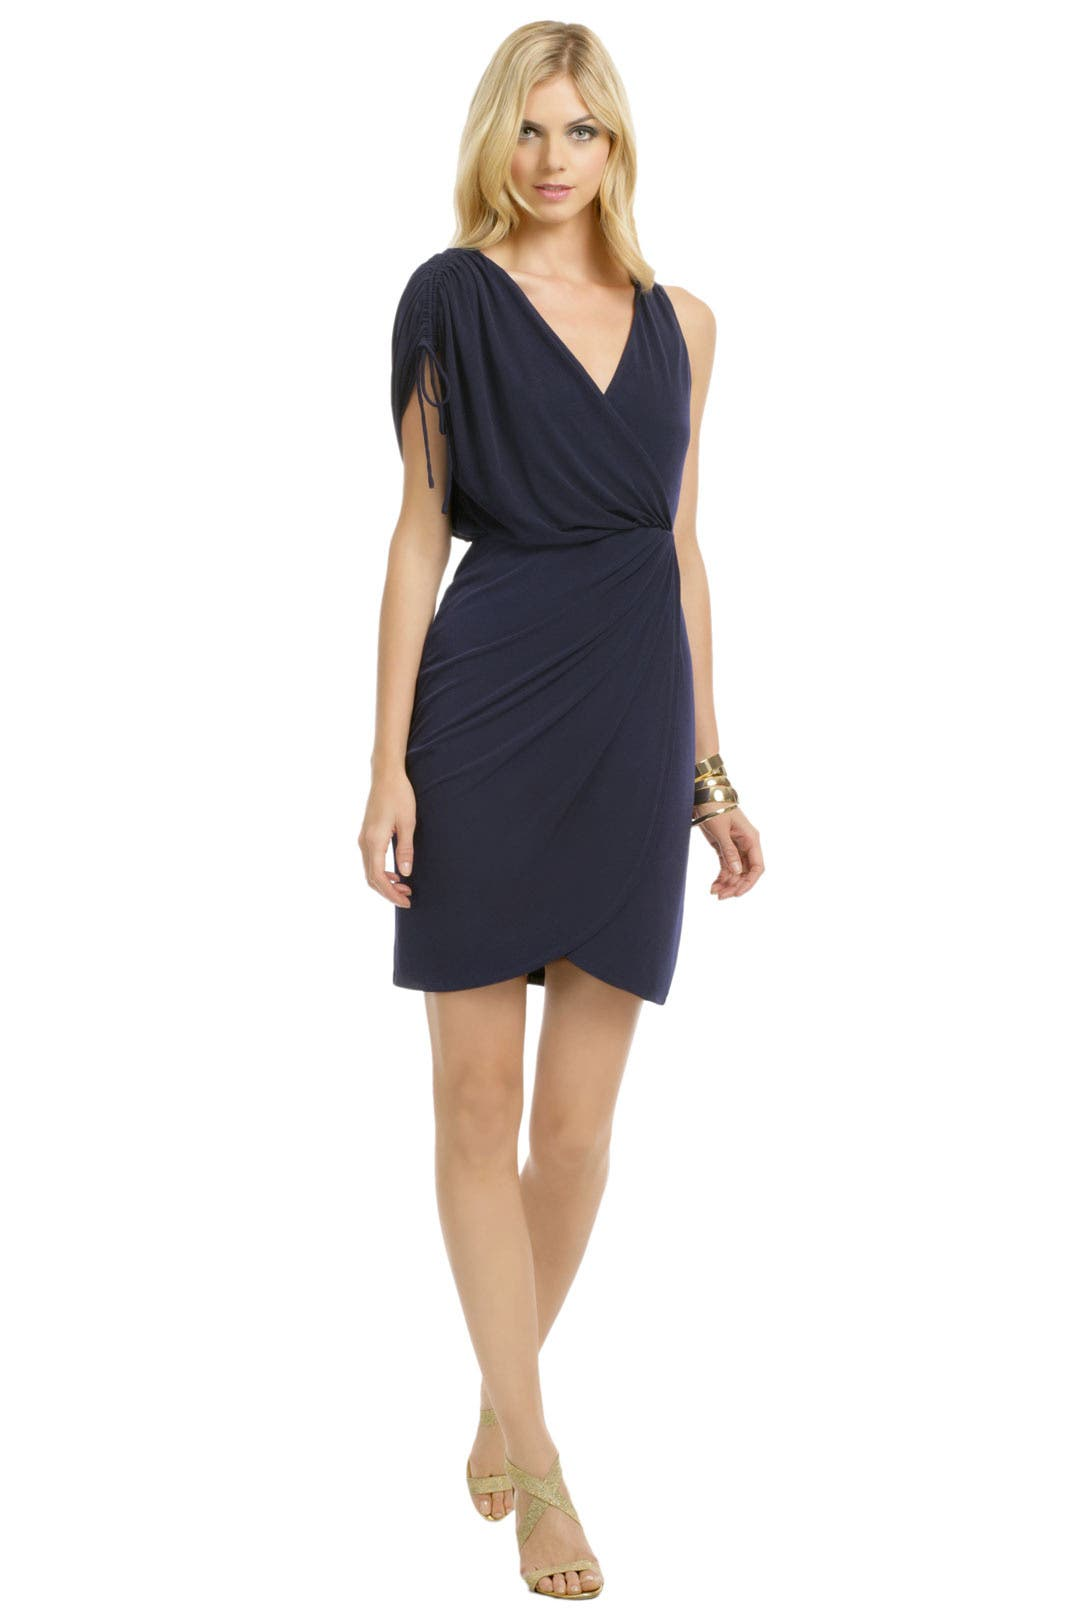 No Strings Attached Dress by Trina Turk